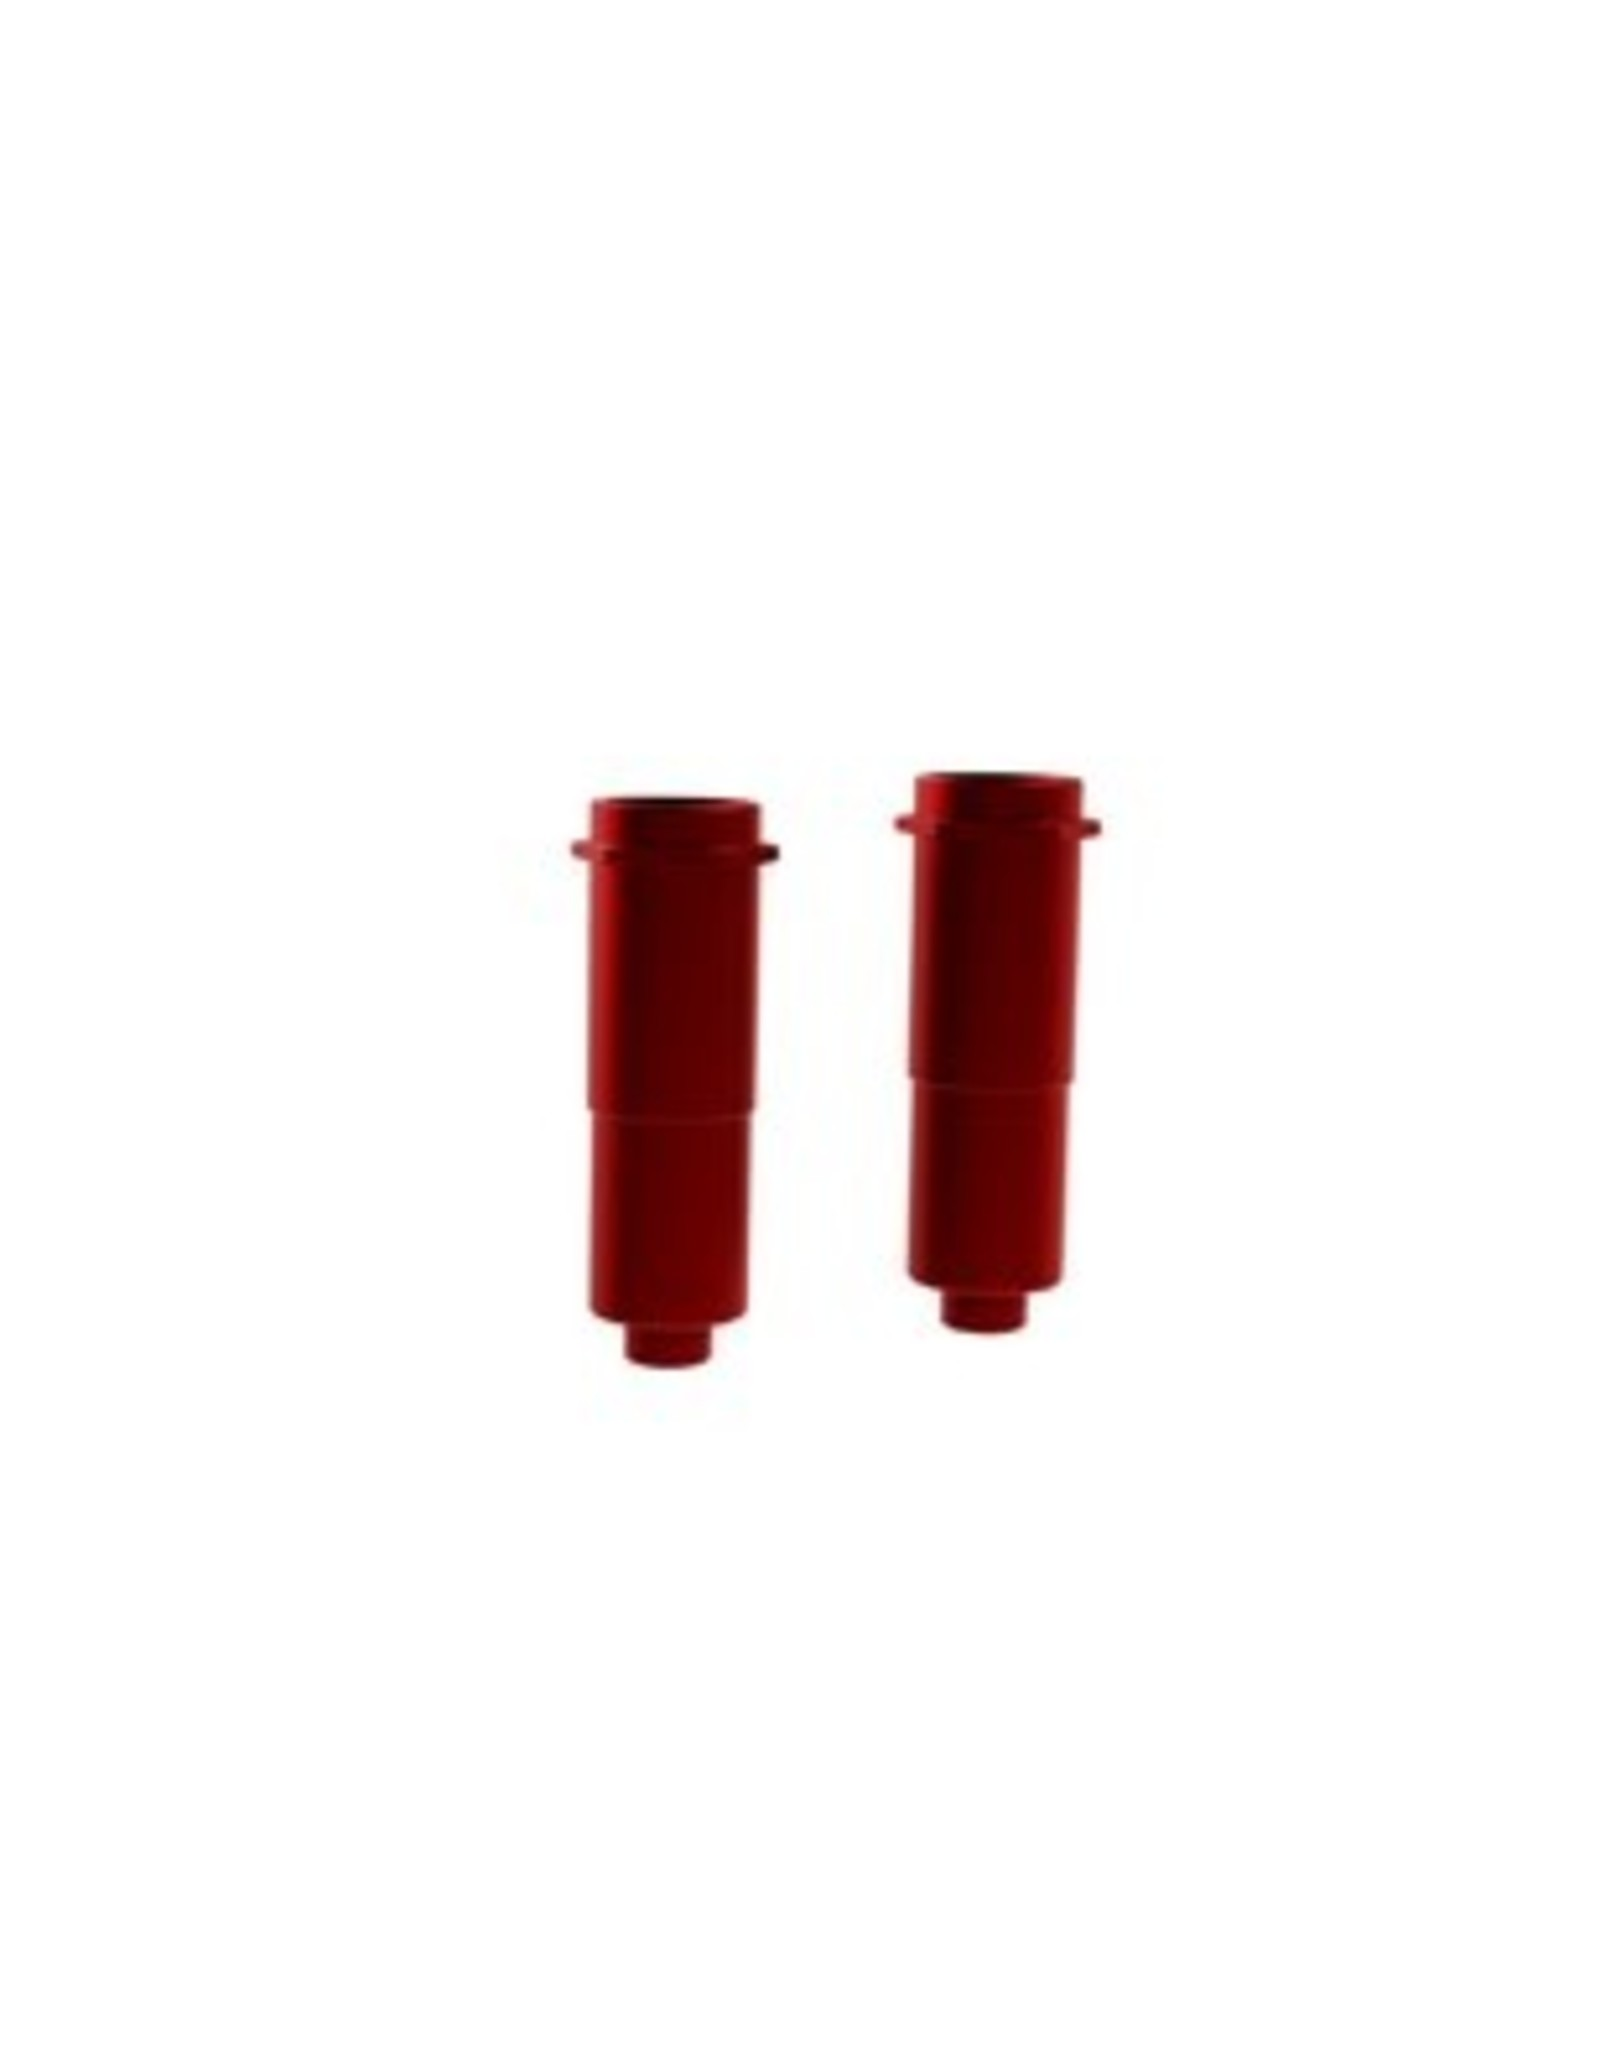 Arrma ARRMA Shock Body 16x63mm Aluminum Red KRATON (2)